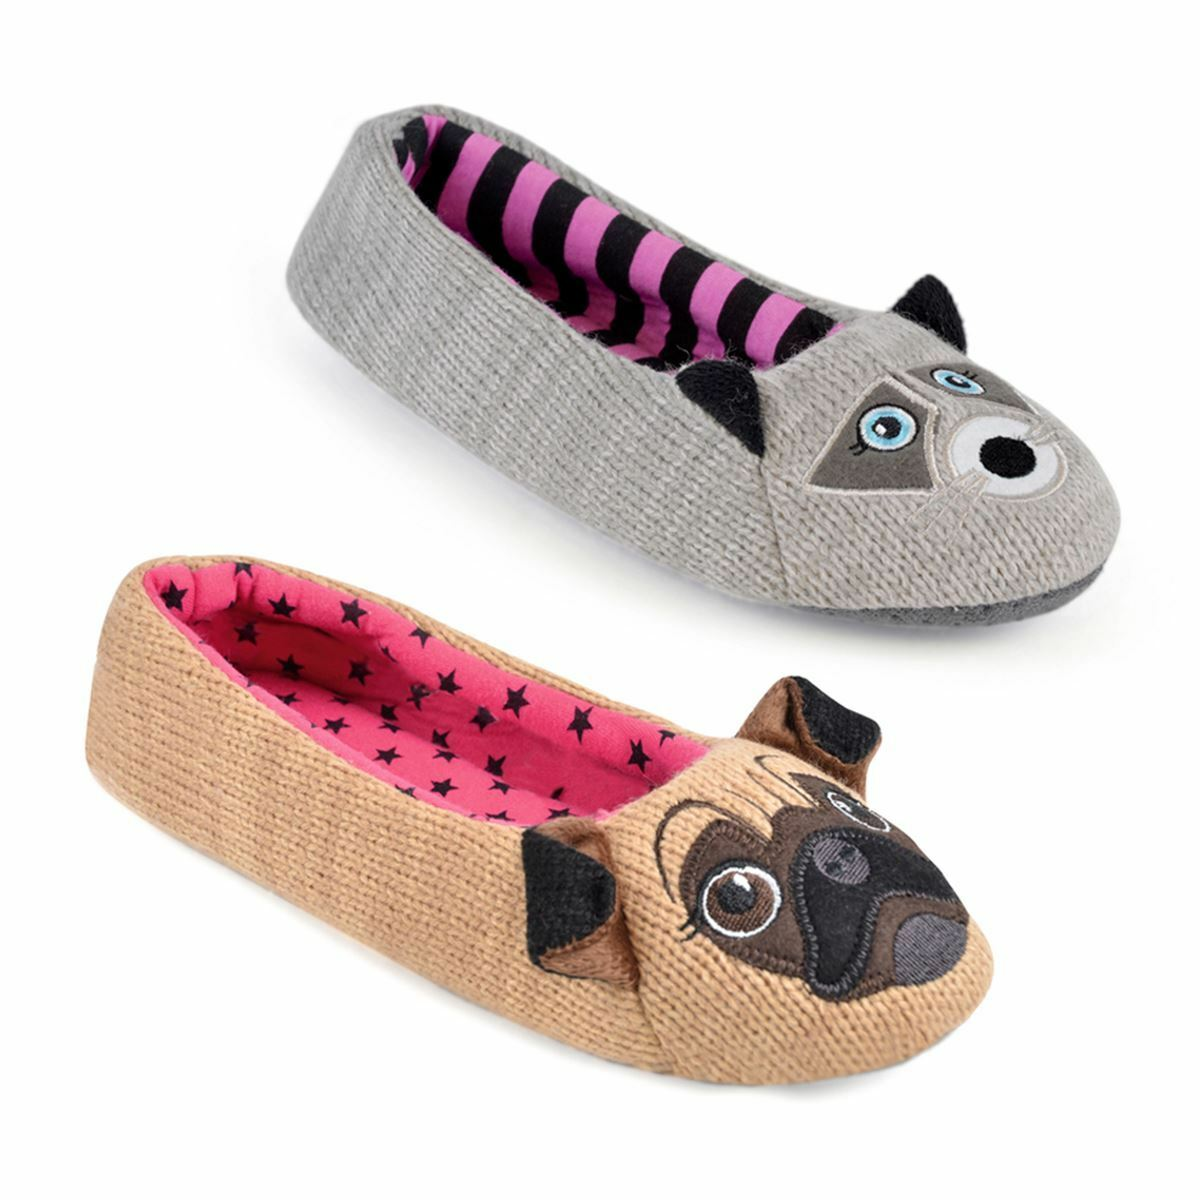 Womens/Ladies Footwear Knitted Ballet Slippers With Raccoon Or Pug Face Design